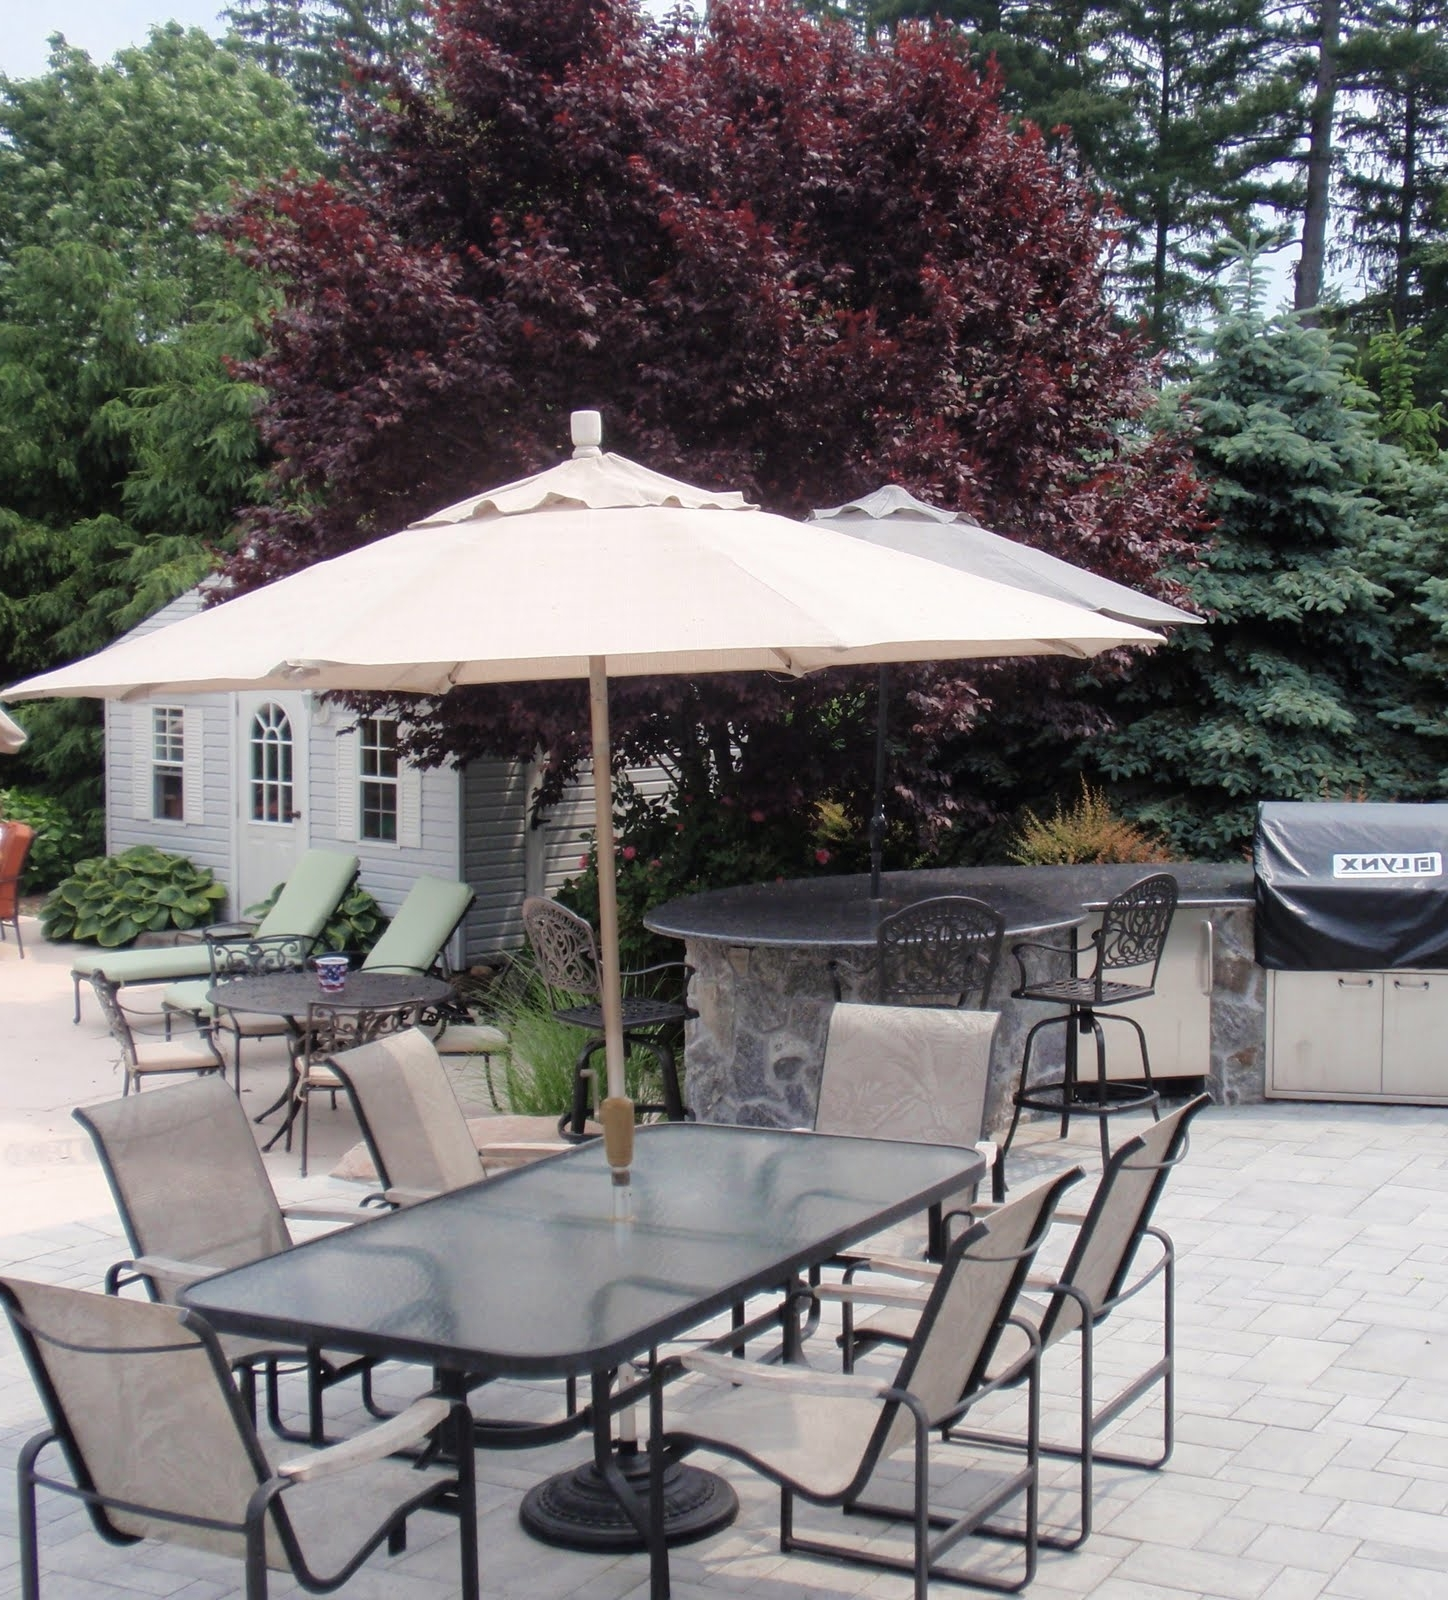 Most Current Small Patio Umbrellas Regarding Garden: Enchanting Outdoor Patio Decor Ideas With Patio Umbrellas (View 5 of 20)